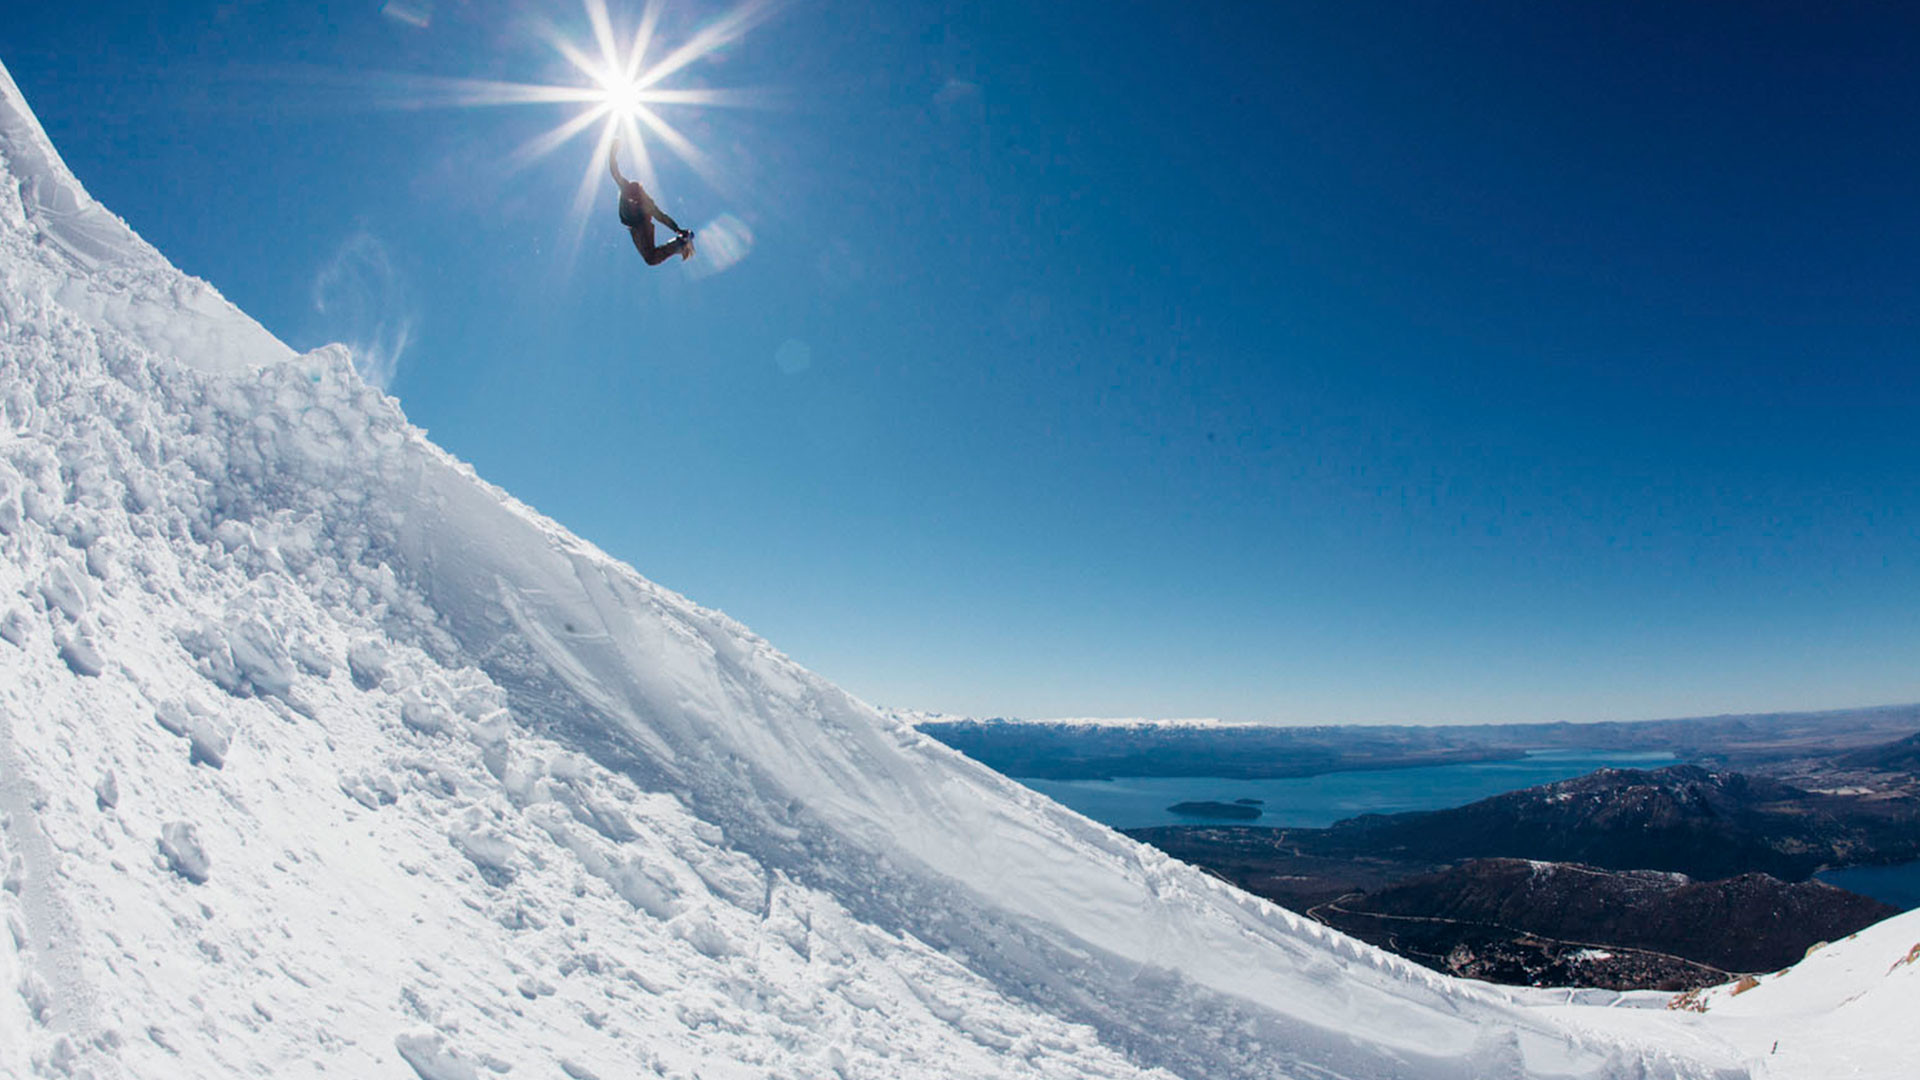 Extreme Wallpaper 1920x1080: Extreme Snowboarding Wallpapers (62+ Images